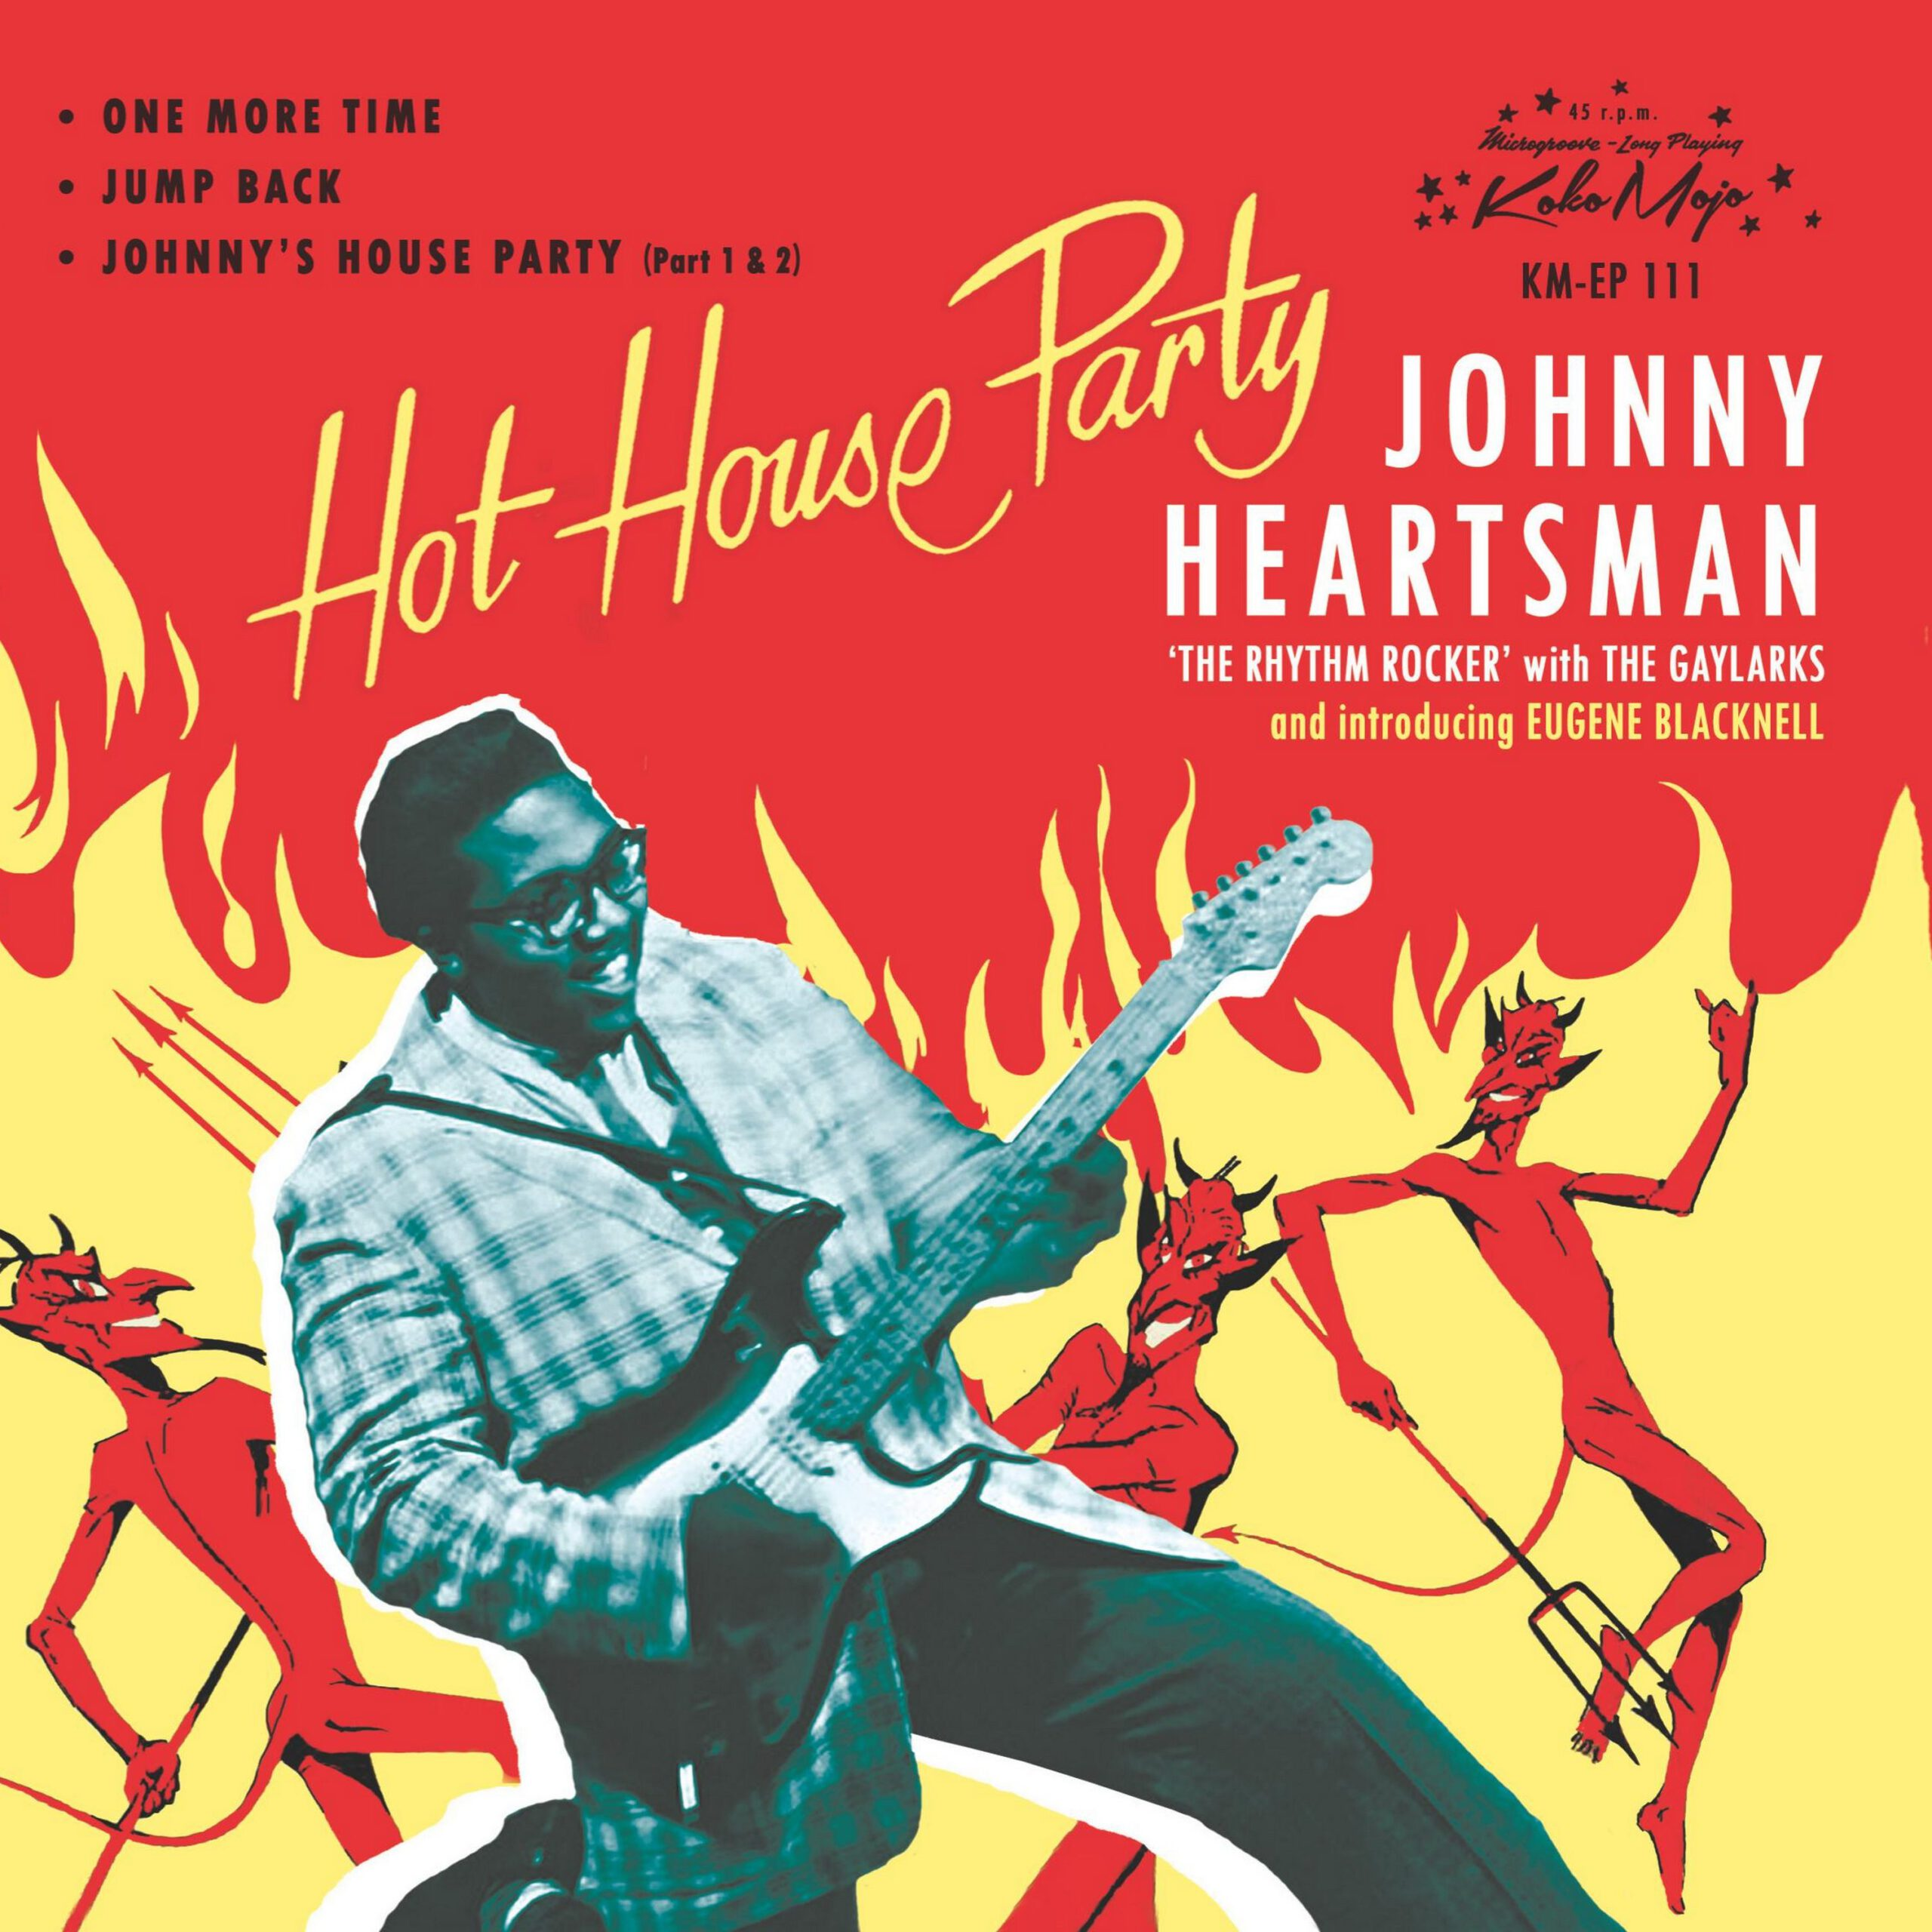 Johnny Heartsman - Hot House Party